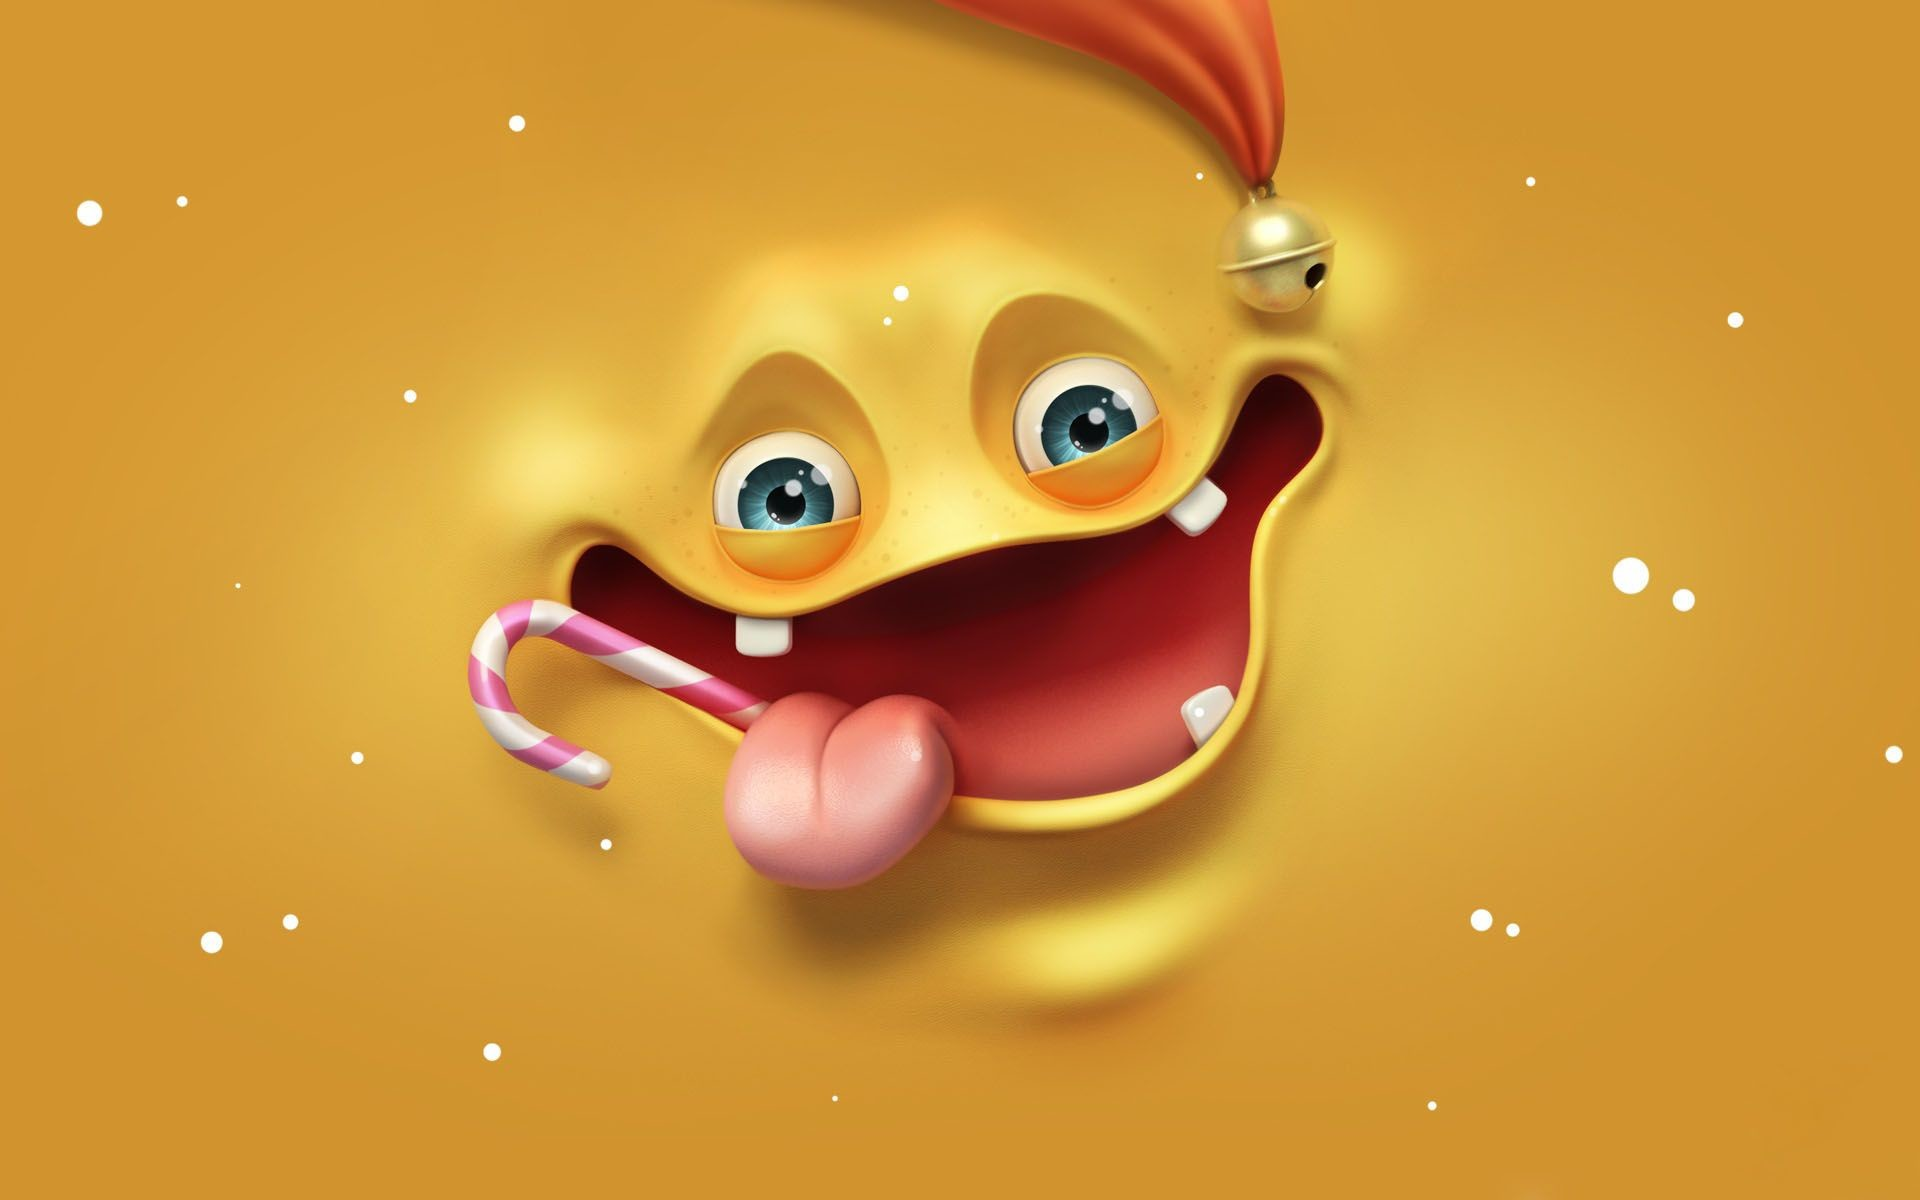 Res: 1920x1200, Small Cute Monster Latest HD Wallpapers Free Download